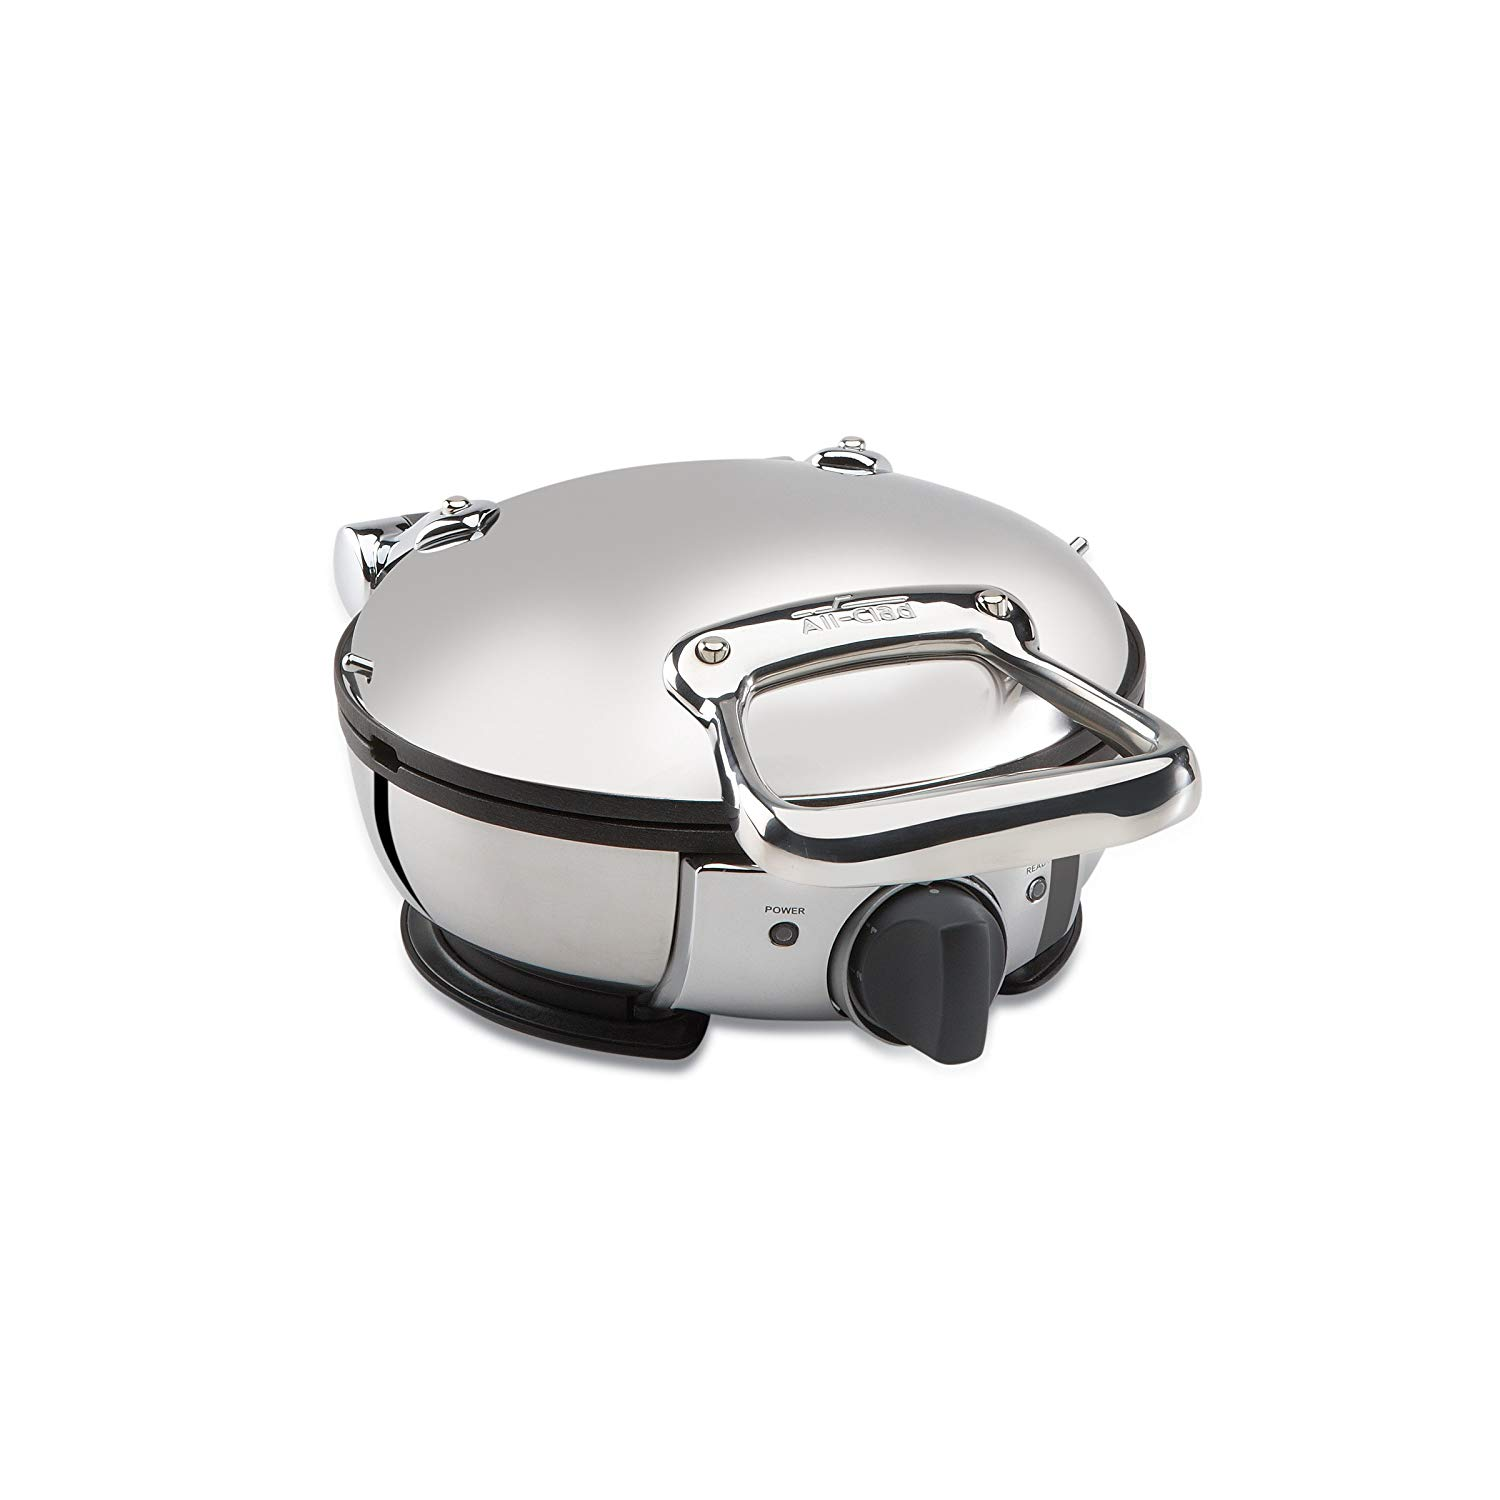 All-clad stainless steel classic round waffle maker